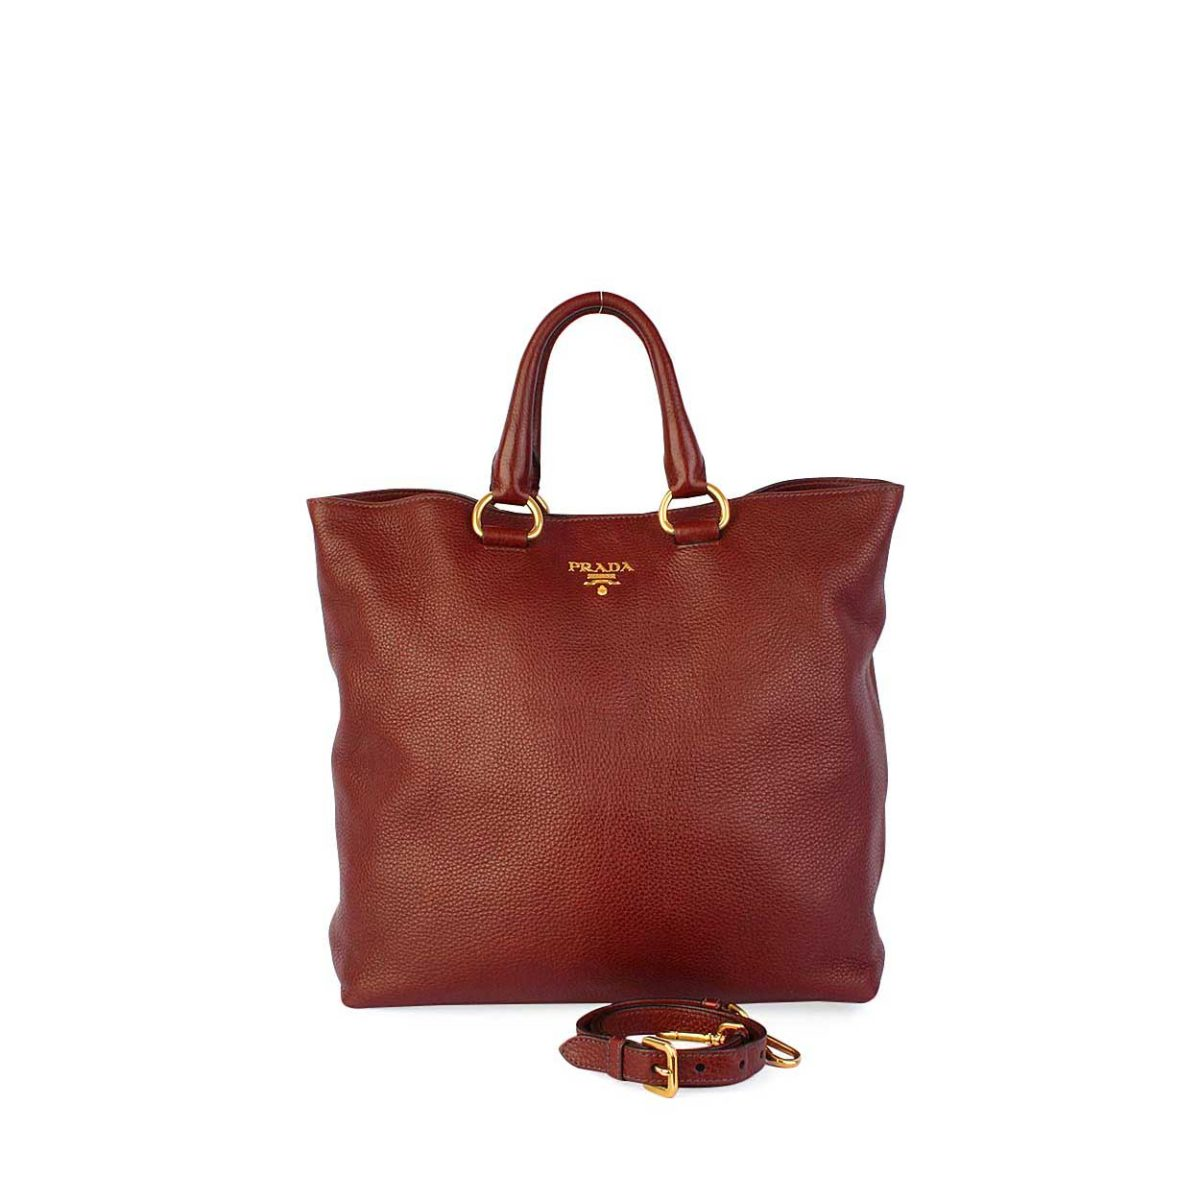 889f640c00b4 PRADA Rubino Vitello Daino Leather Shopping Tote Brown